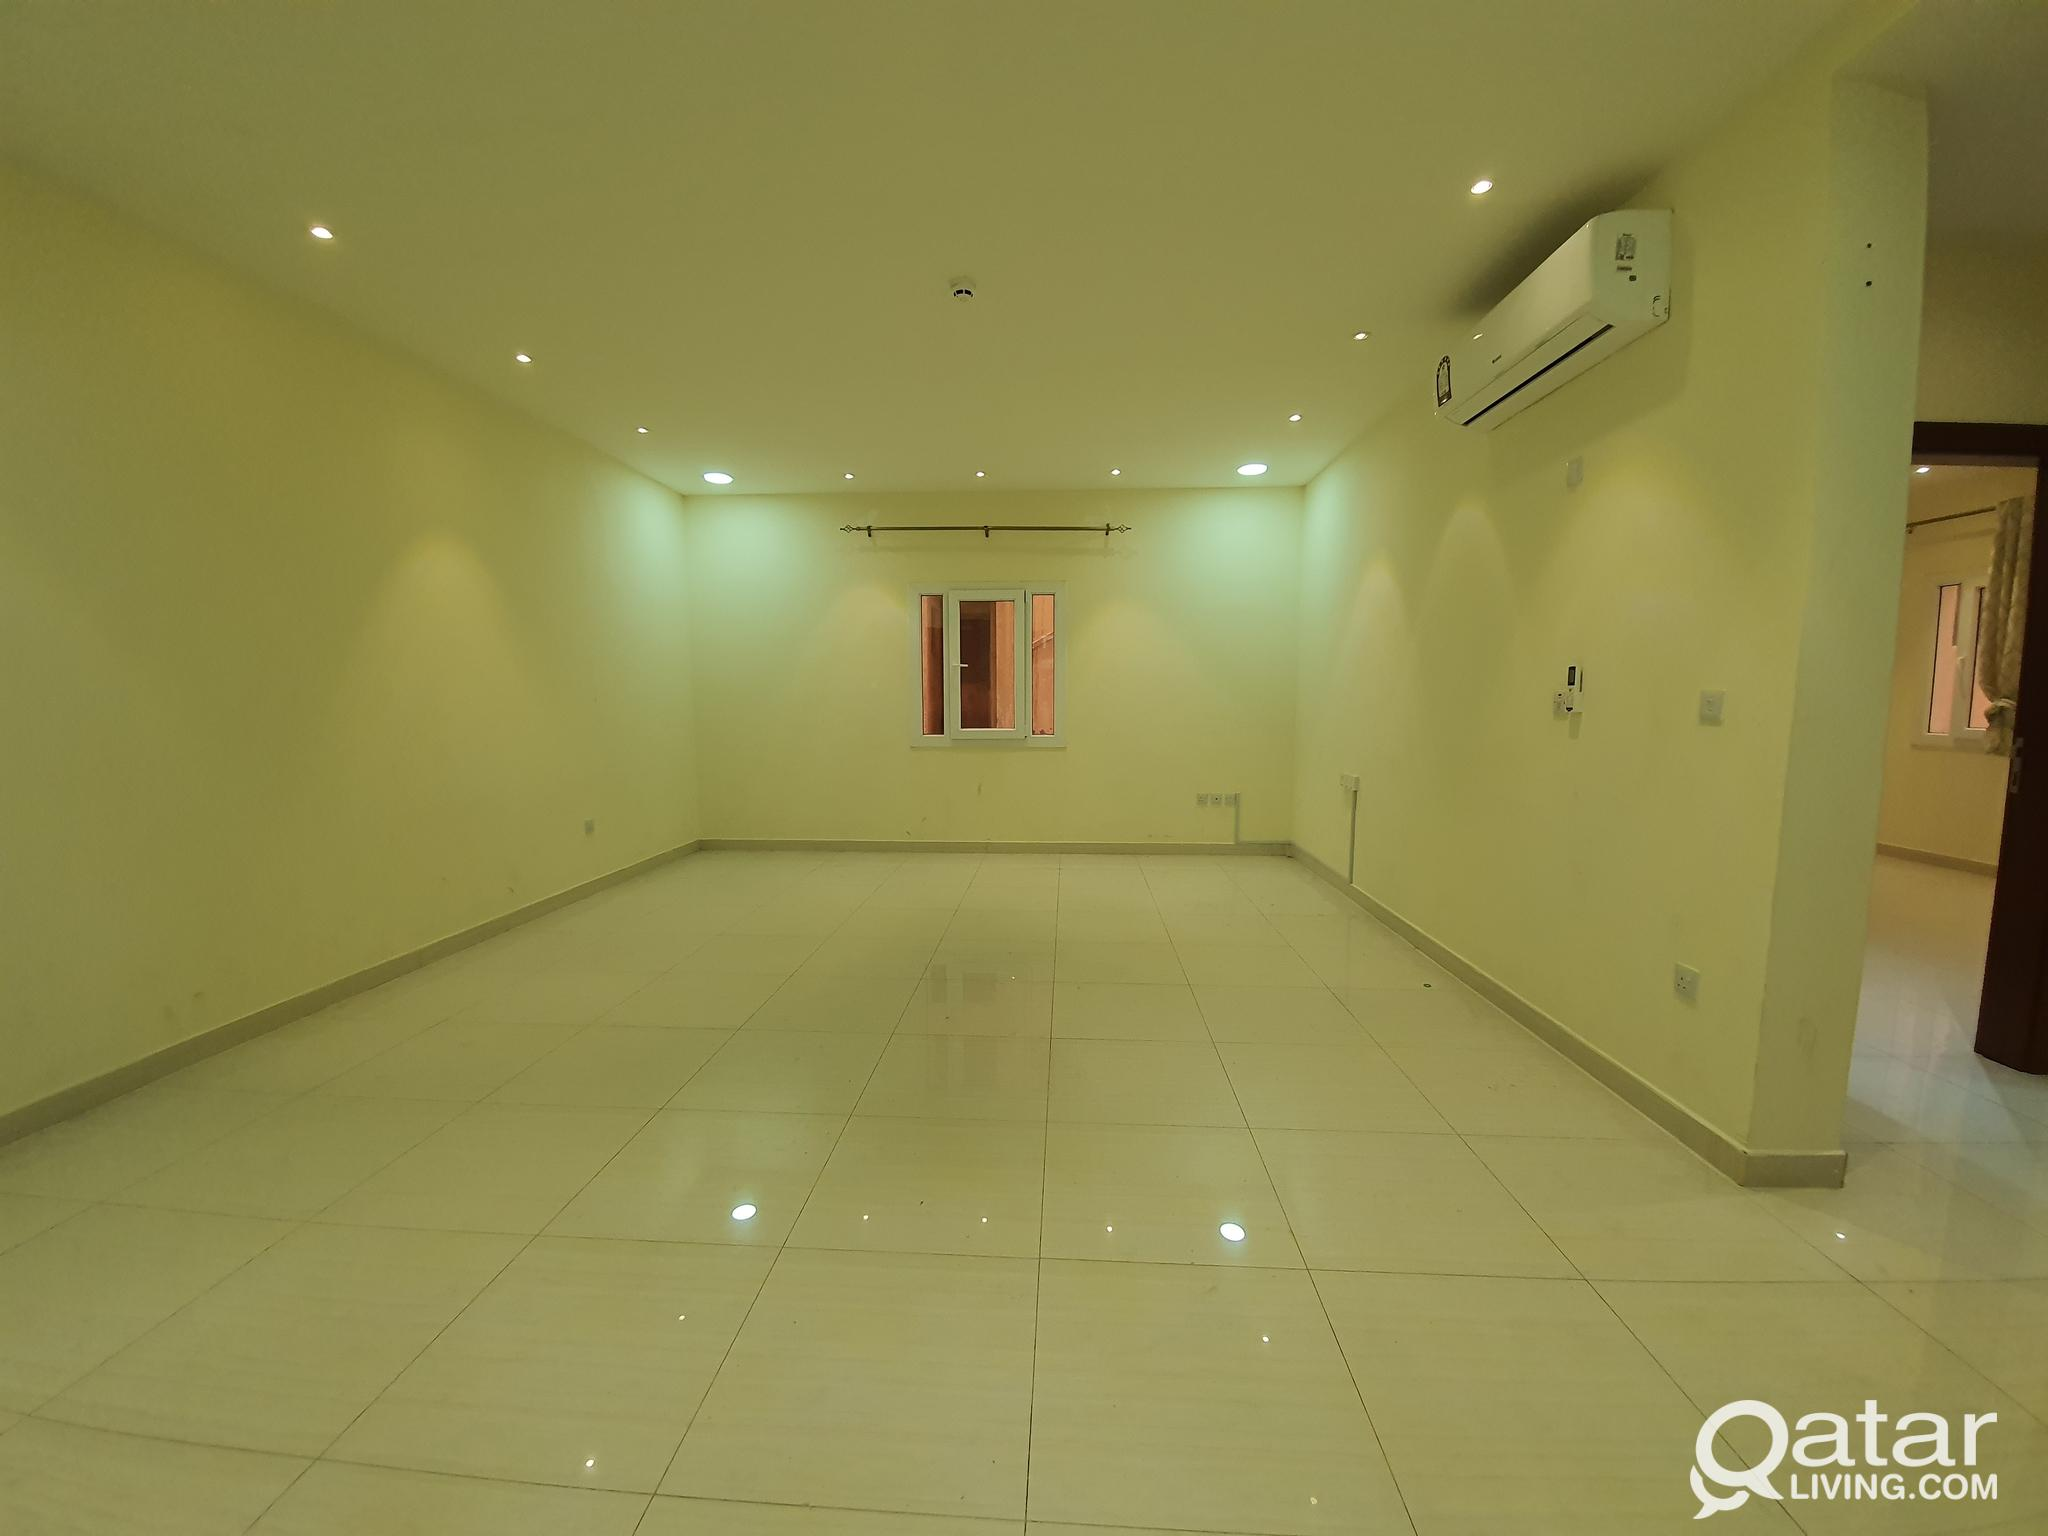 2 BHK Flat in najma -غرفتين فيى النجمه